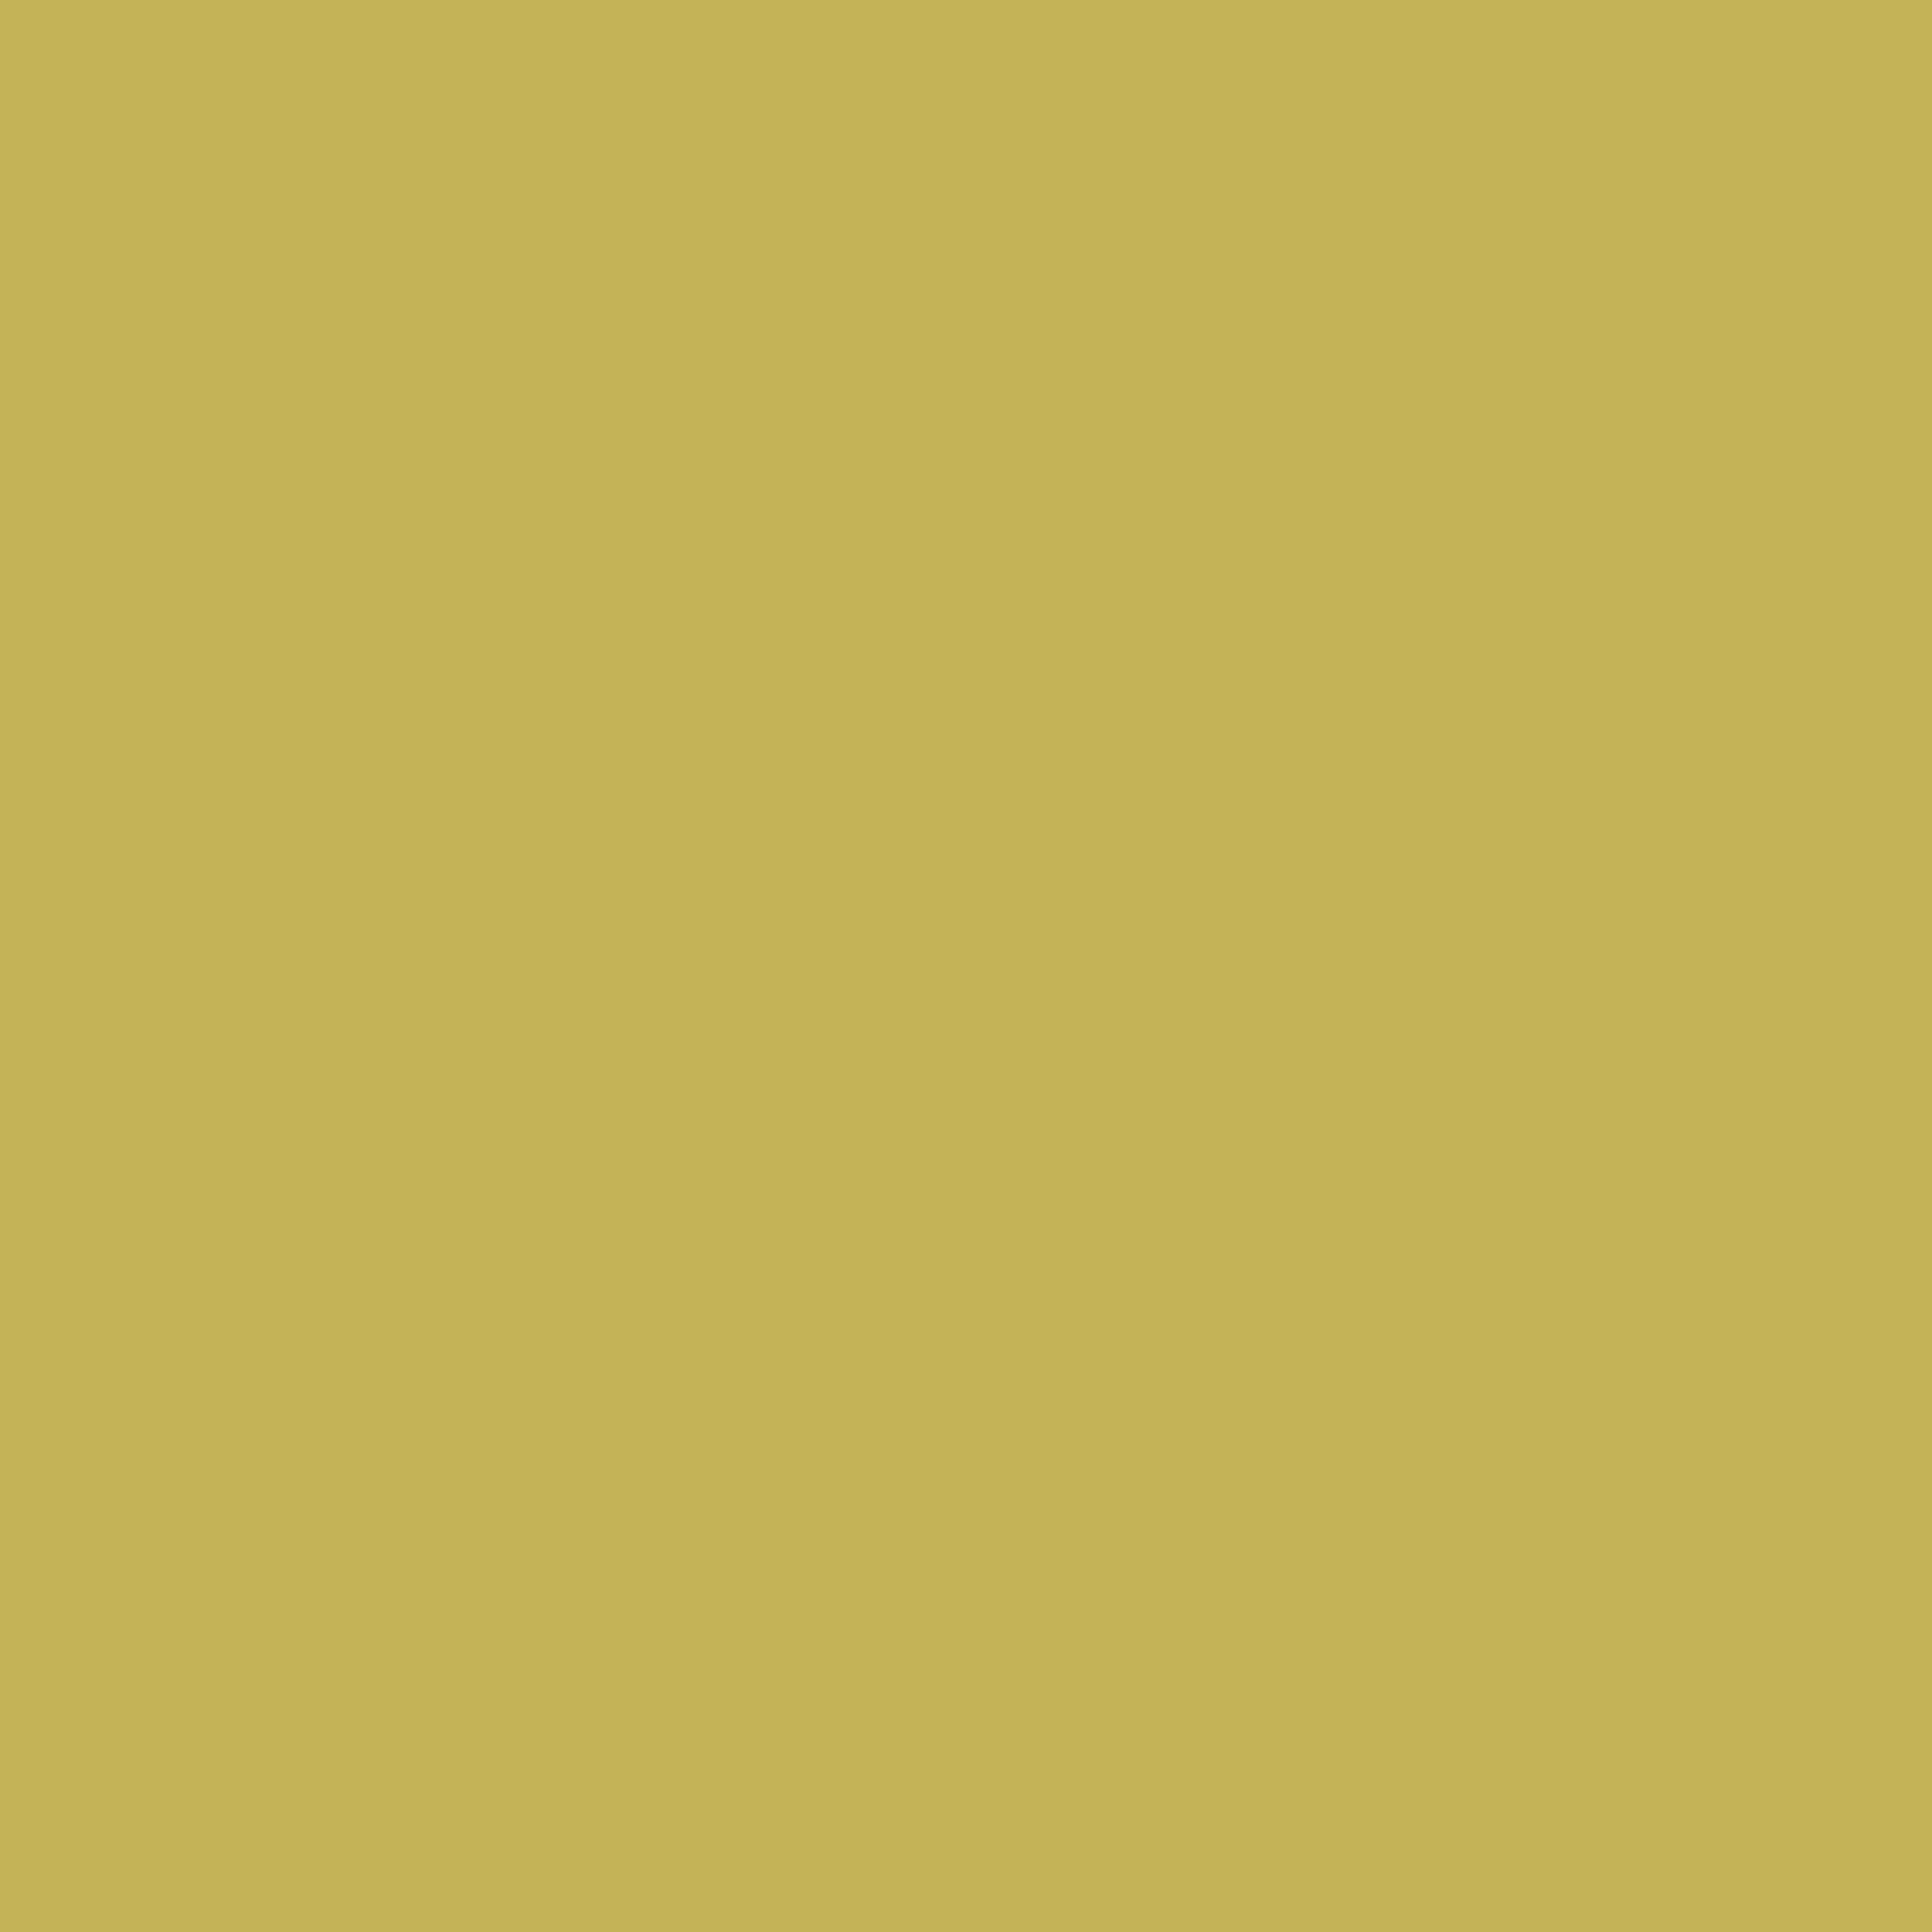 2732x2732 Vegas Gold Solid Color Background